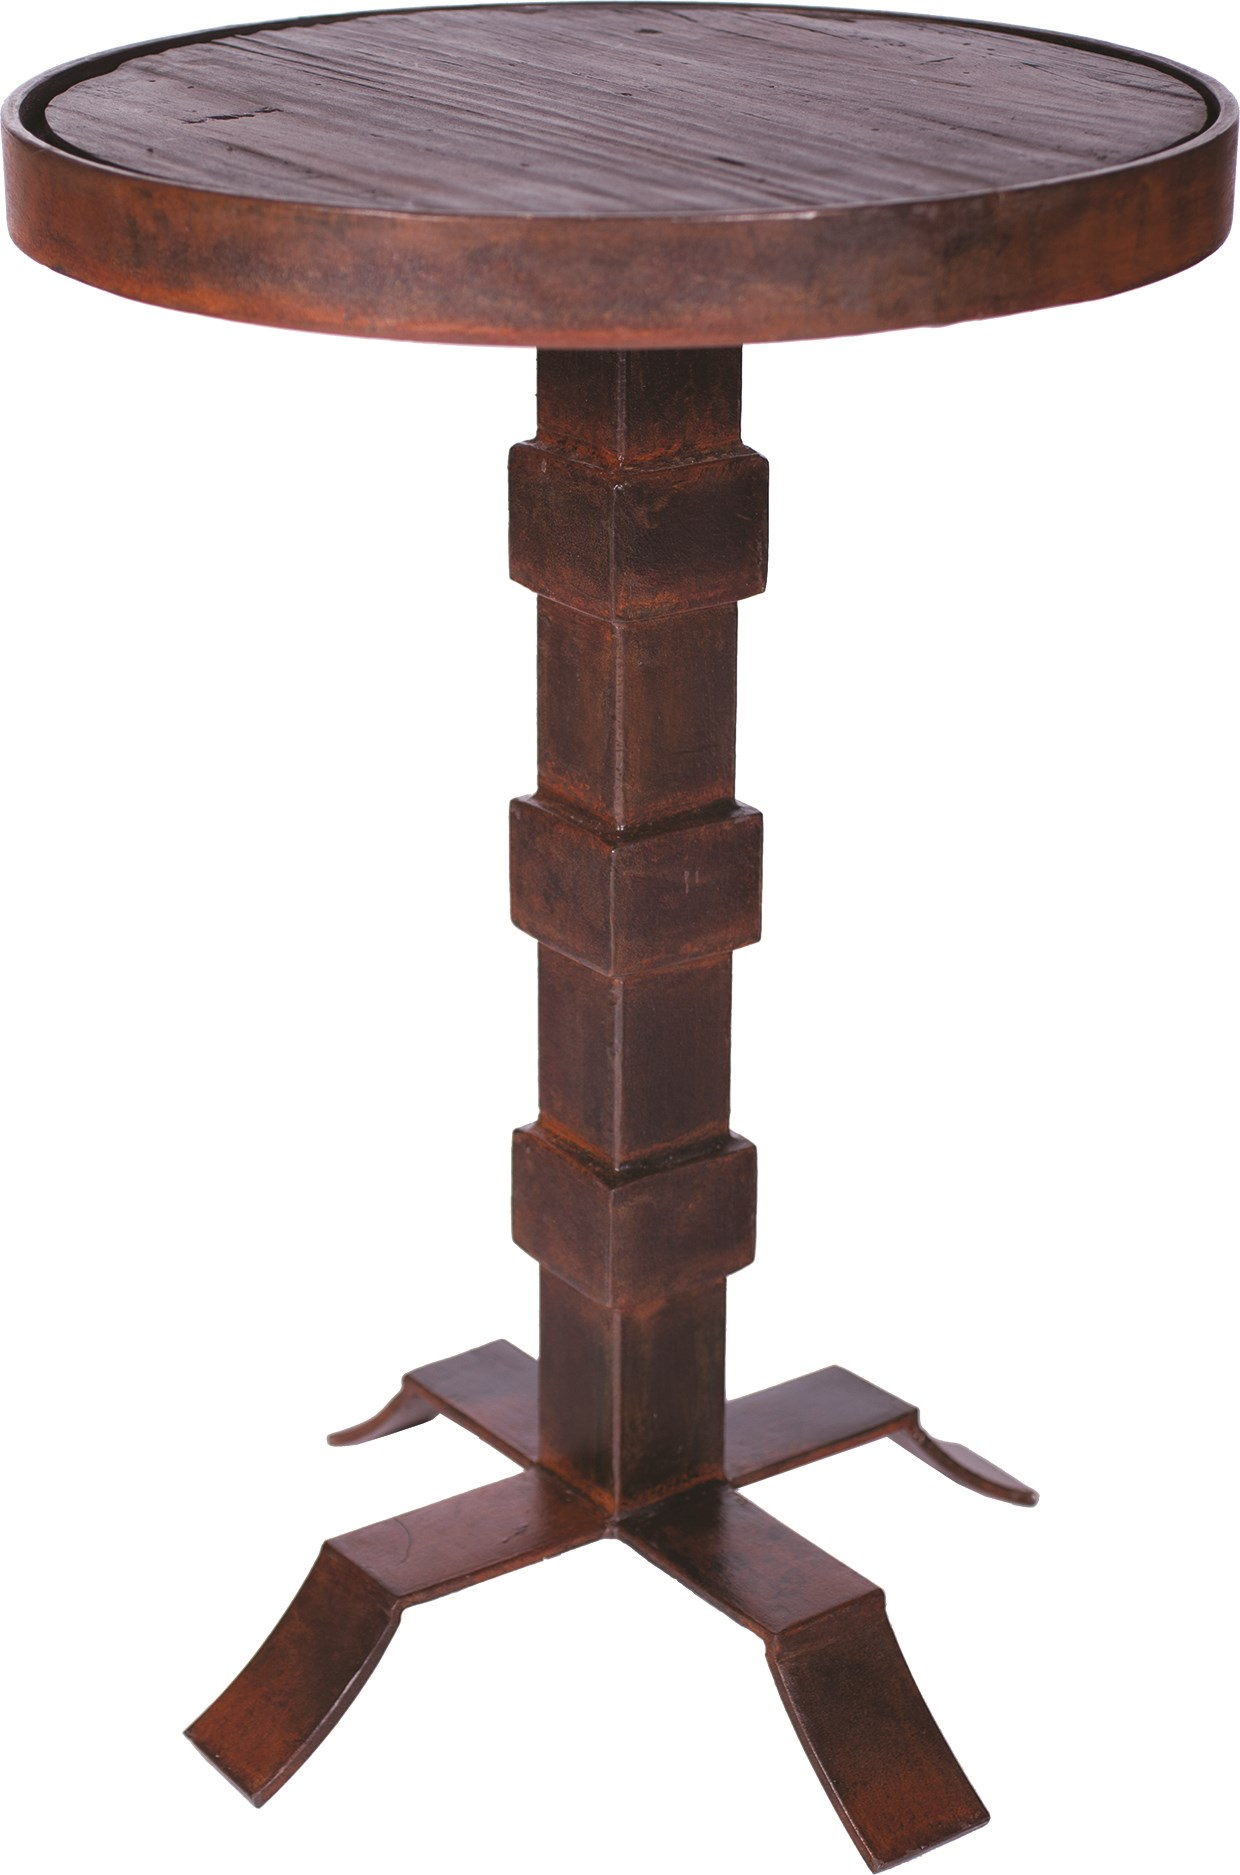 round iron accent table with wood top boulevard urban living carpet door trim outdoor recliner amazing coffee tables broyhill side usb nesting cocktail set owings console shelf